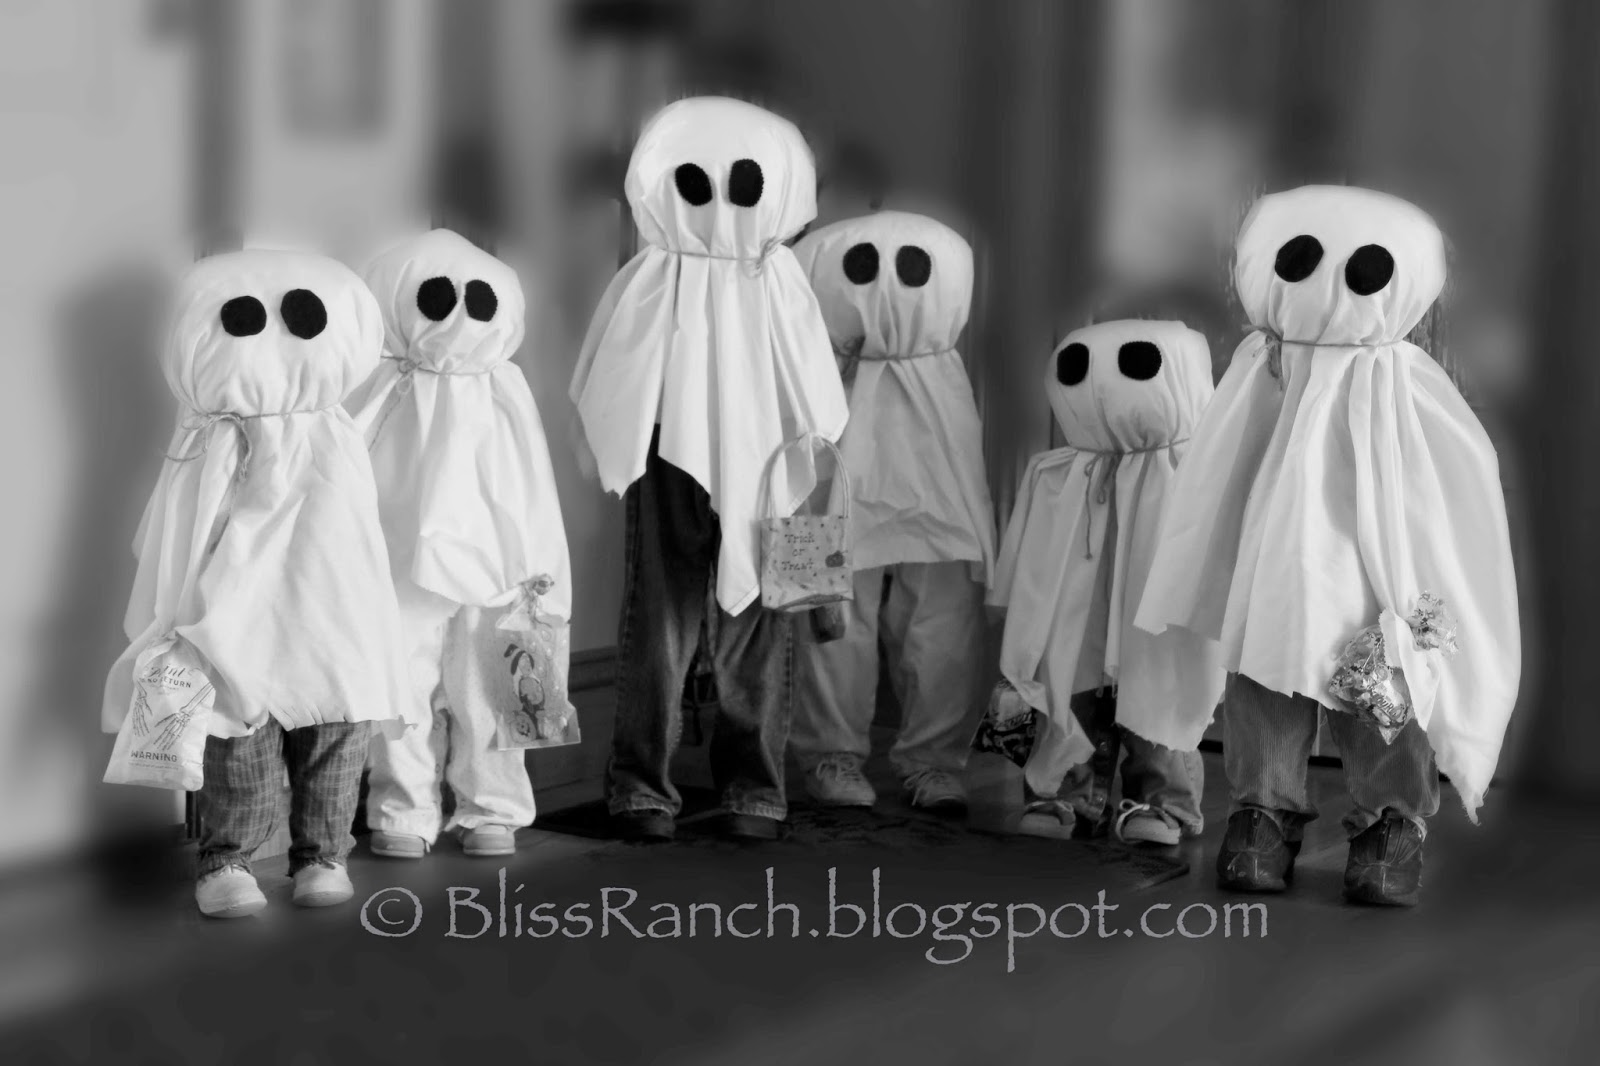 Bliss-Ranch.com How to Make Little Ghosts